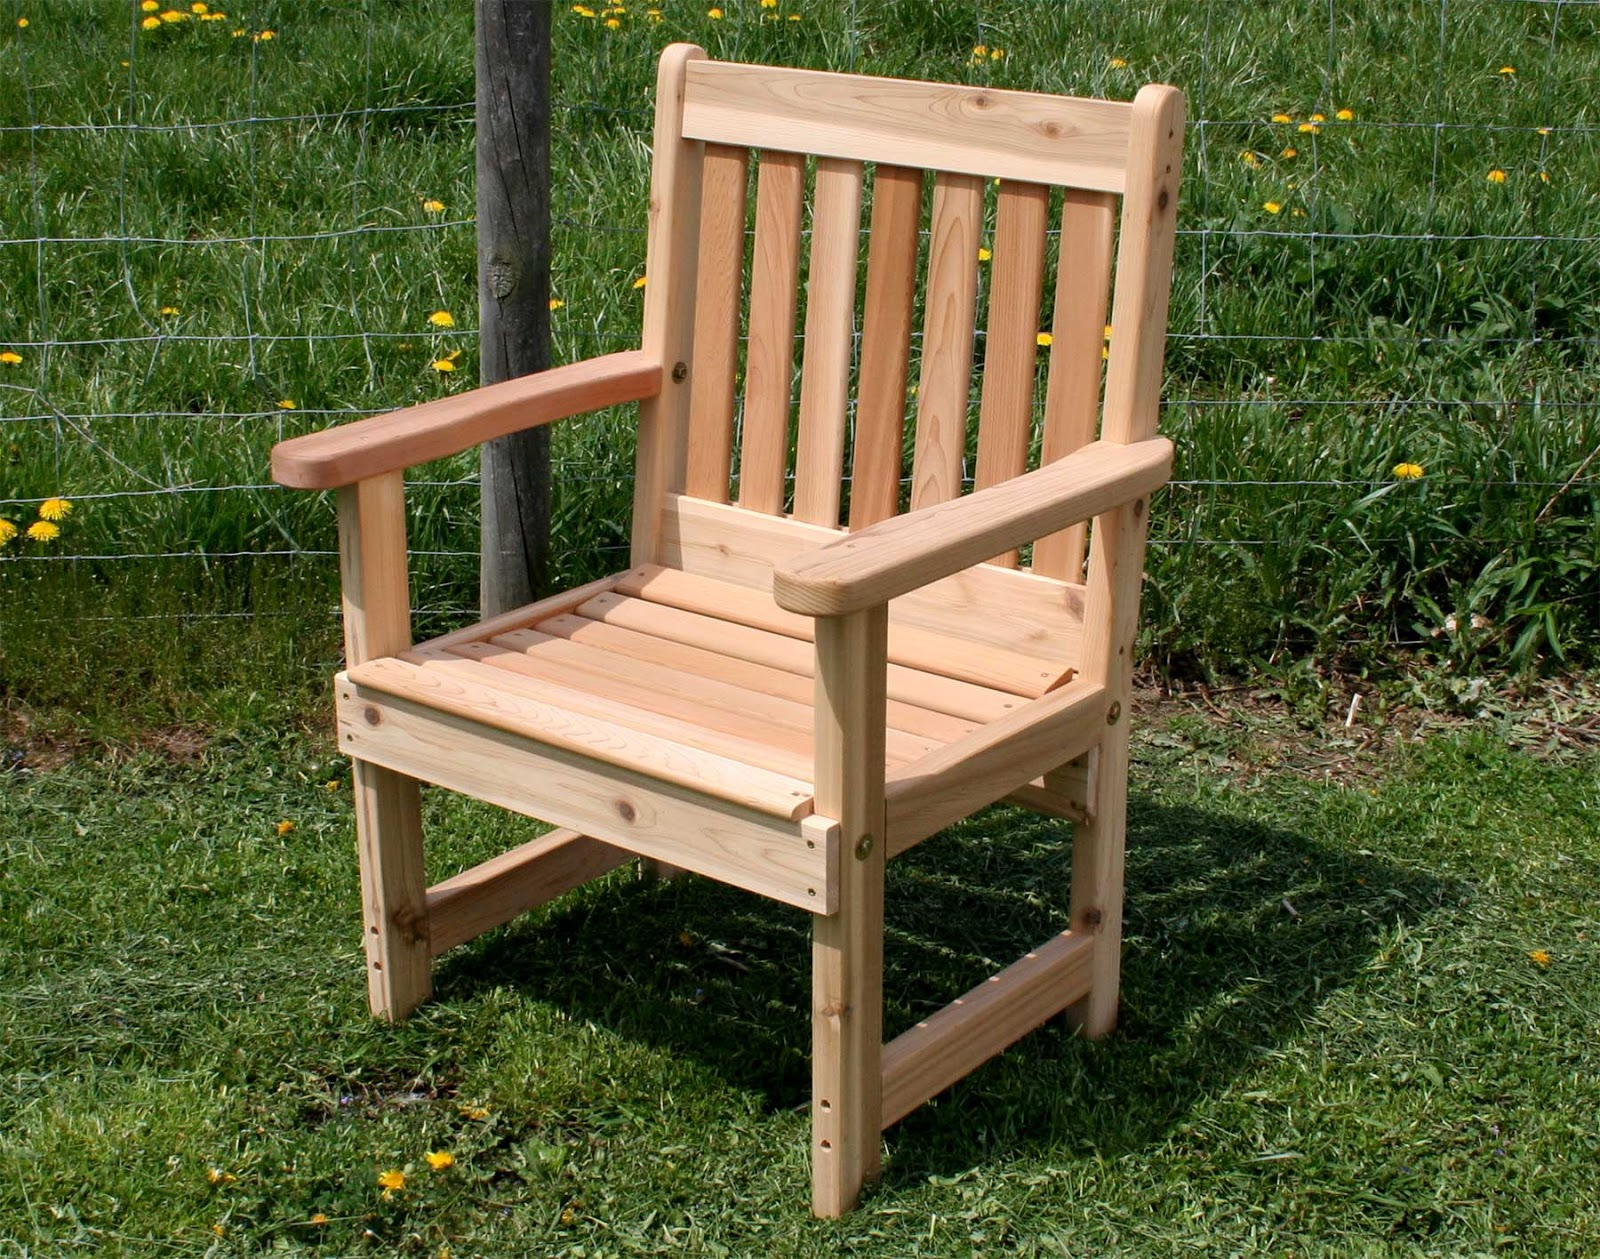 Wooden chairs with armrest - Wooden Chairs With Armrests Simple Shaped With A Right Angle As Seats In General Backrest Made Tenuous Horizontally Arranged So That There Is Air